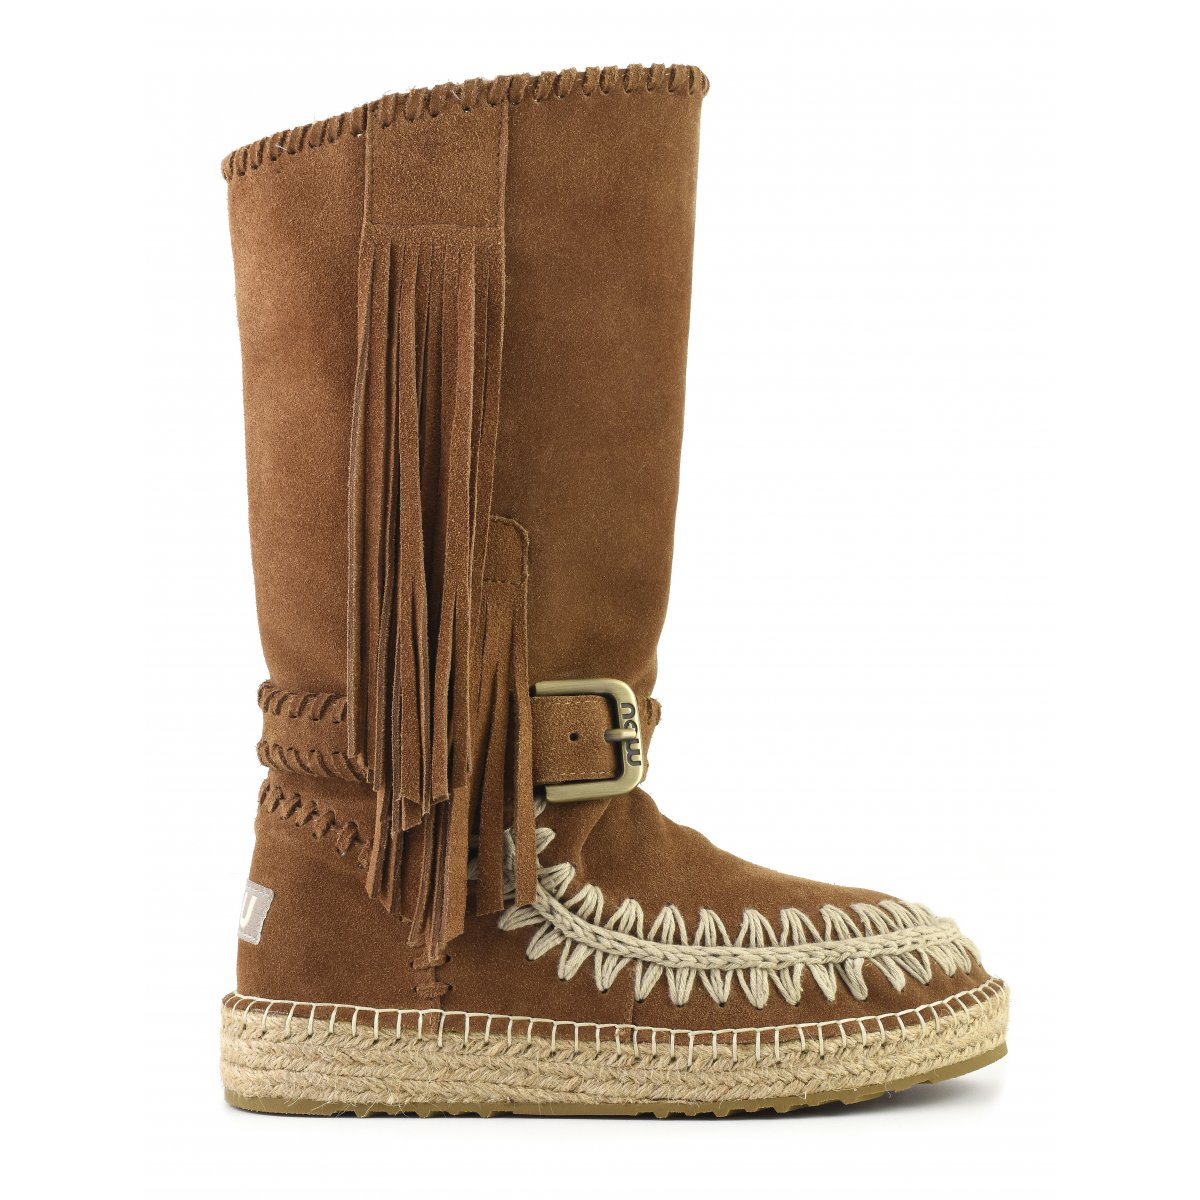 Indian Boot Jute Suede in Cog from mou